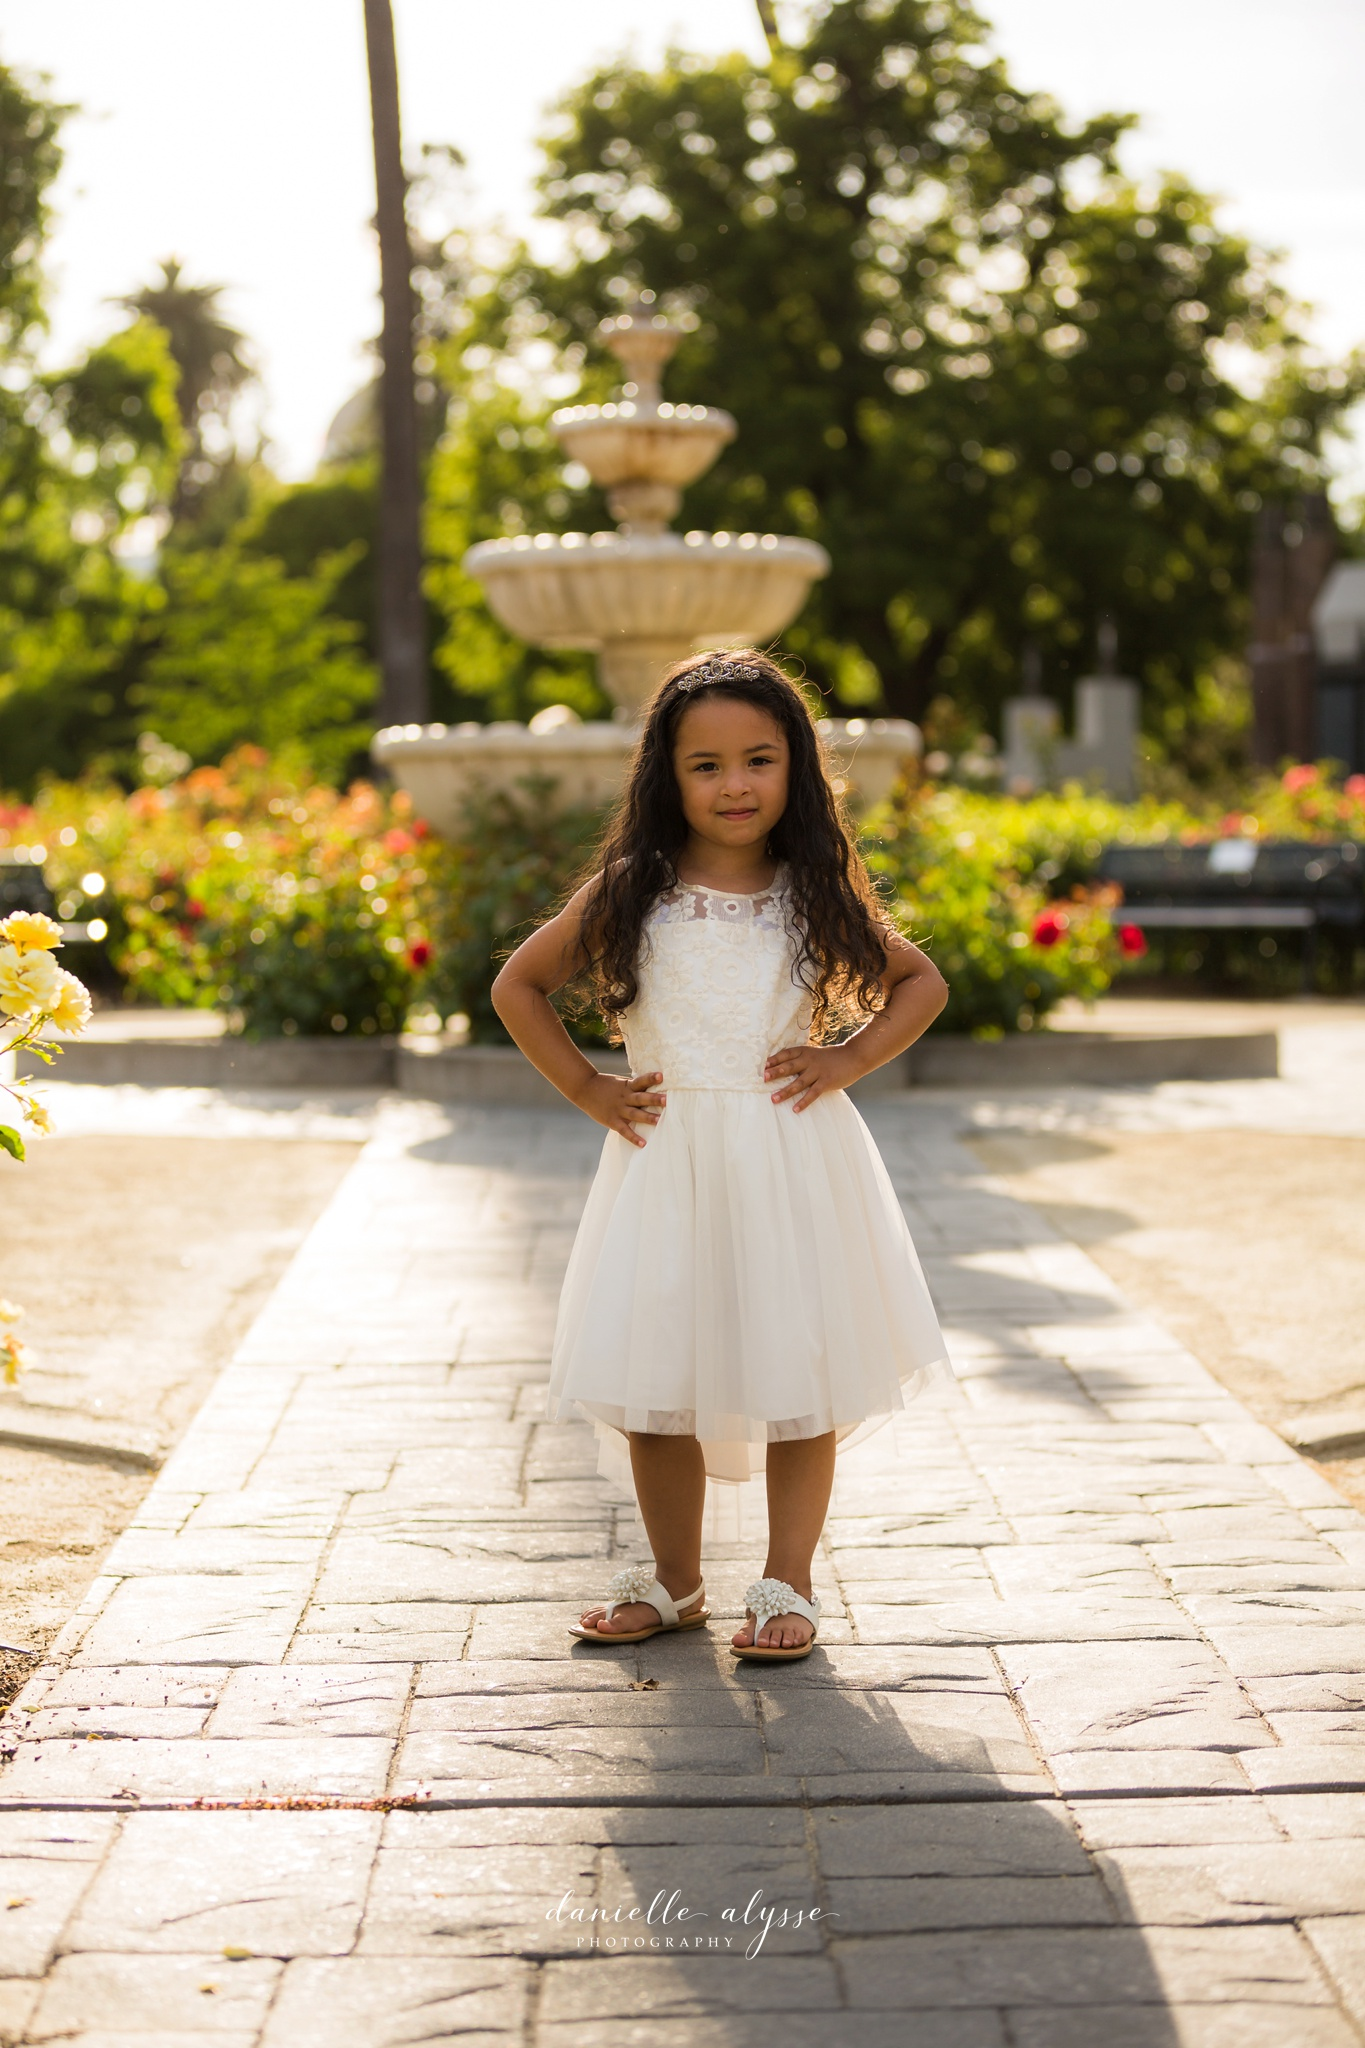 180604_family_portrait_eresvey_state_capitol_park_california_danielle_alysse_photography_blog_1_WEB.jpg